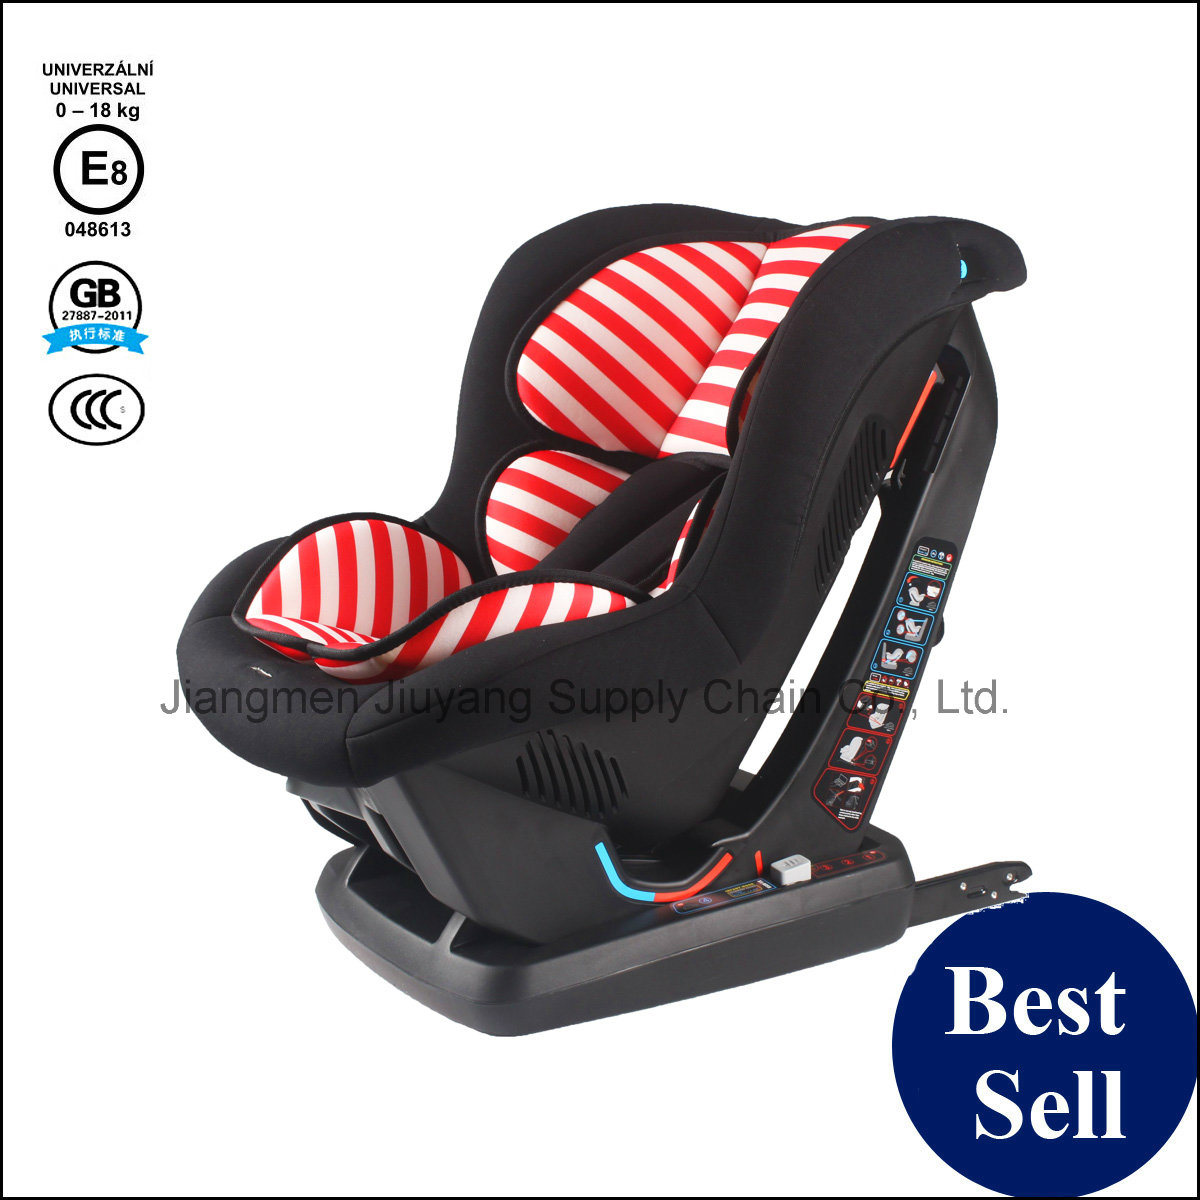 HDPE Frame Baby Safety Car Seat with ECE8 / 3c / GB Certification - Free Sample